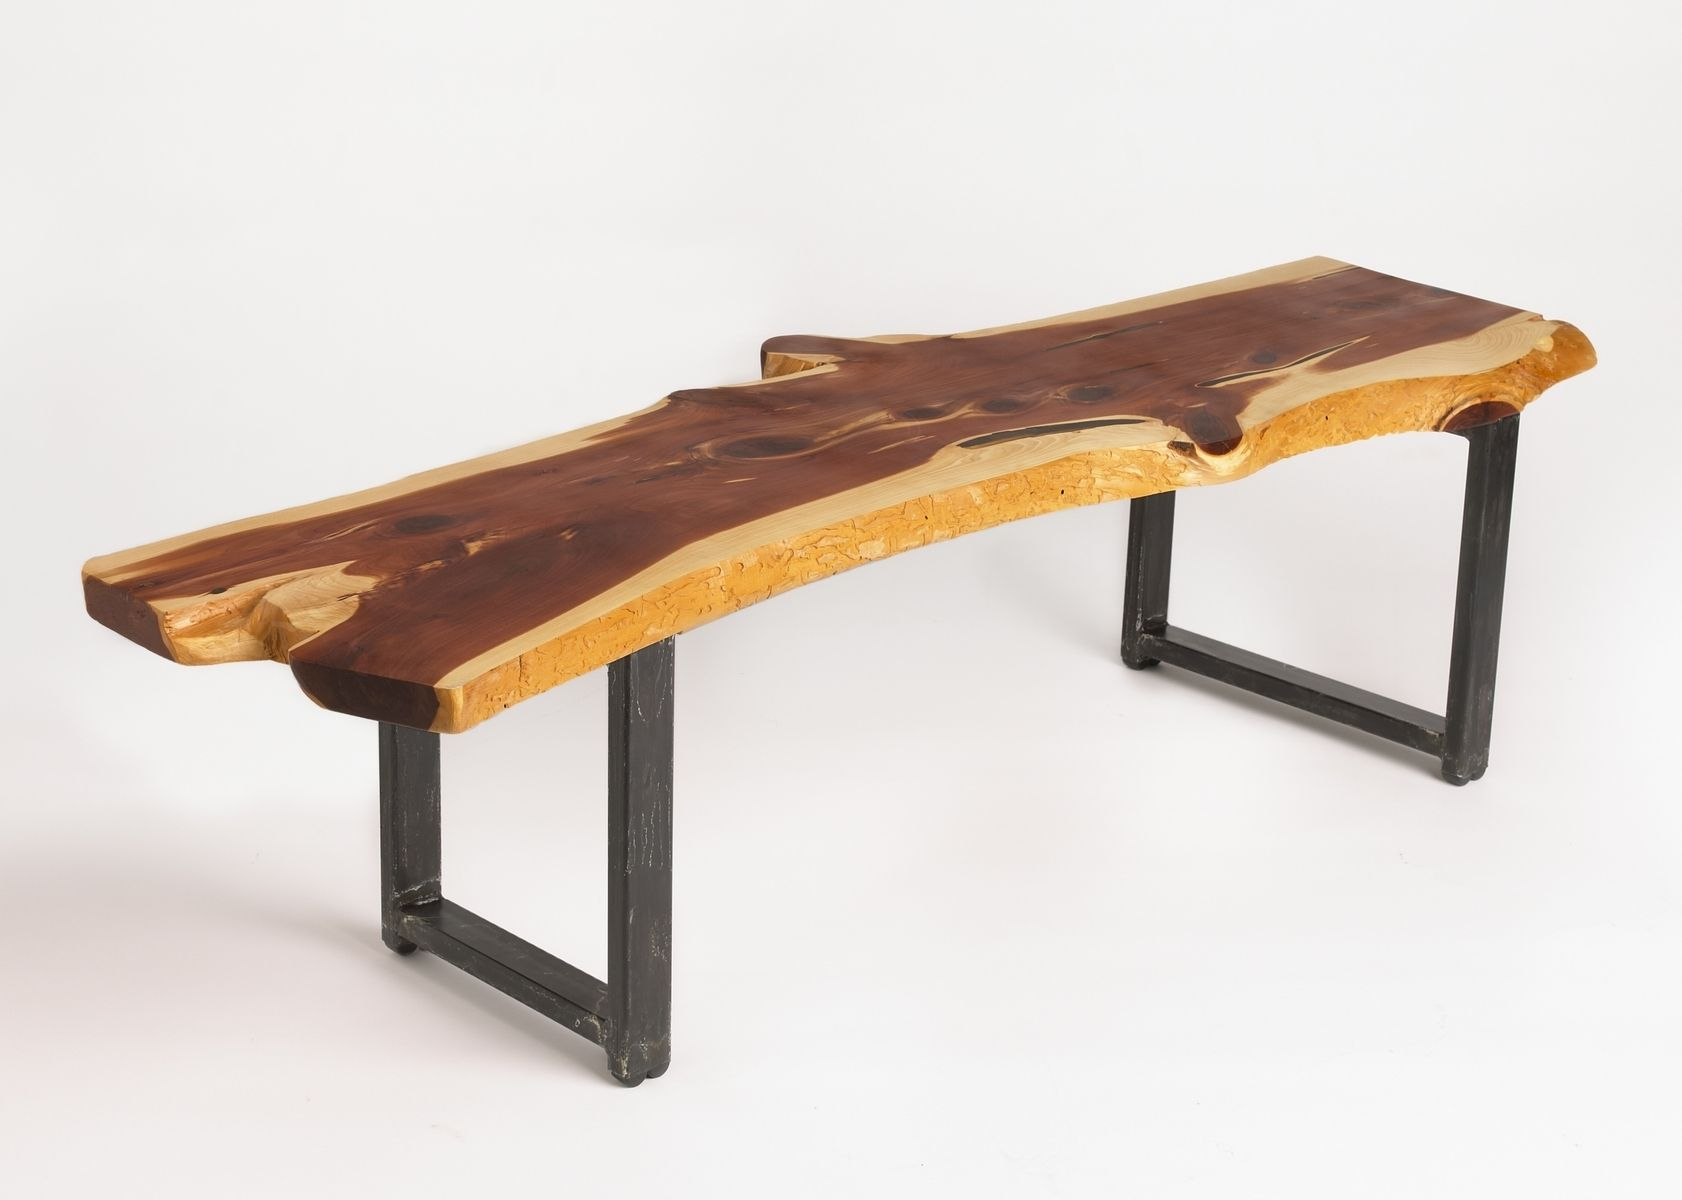 Geeky Coffee Tables Hand Made Cedar Slab Coffee Table By Randy White Wood